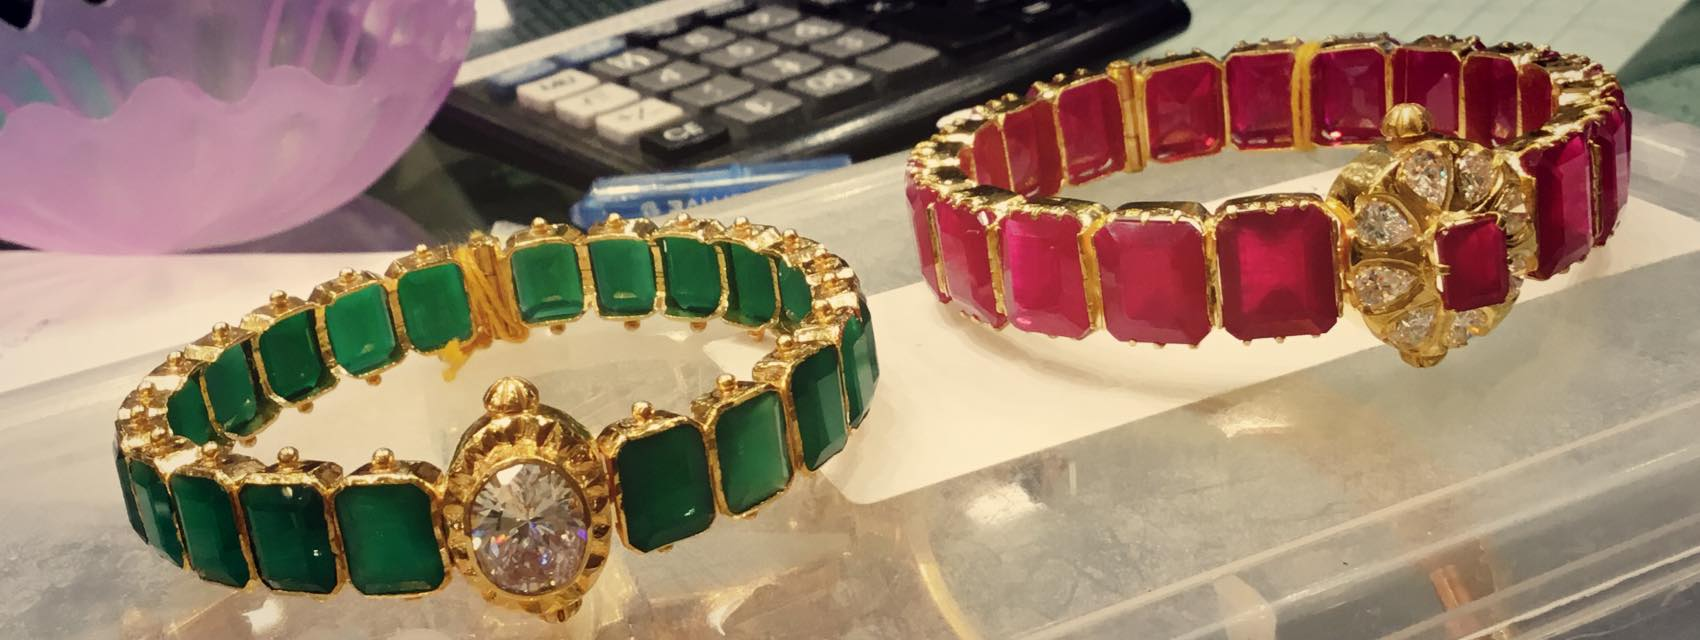 emerald bangles designs classic royals and royal bangle jewellery emeralds pin